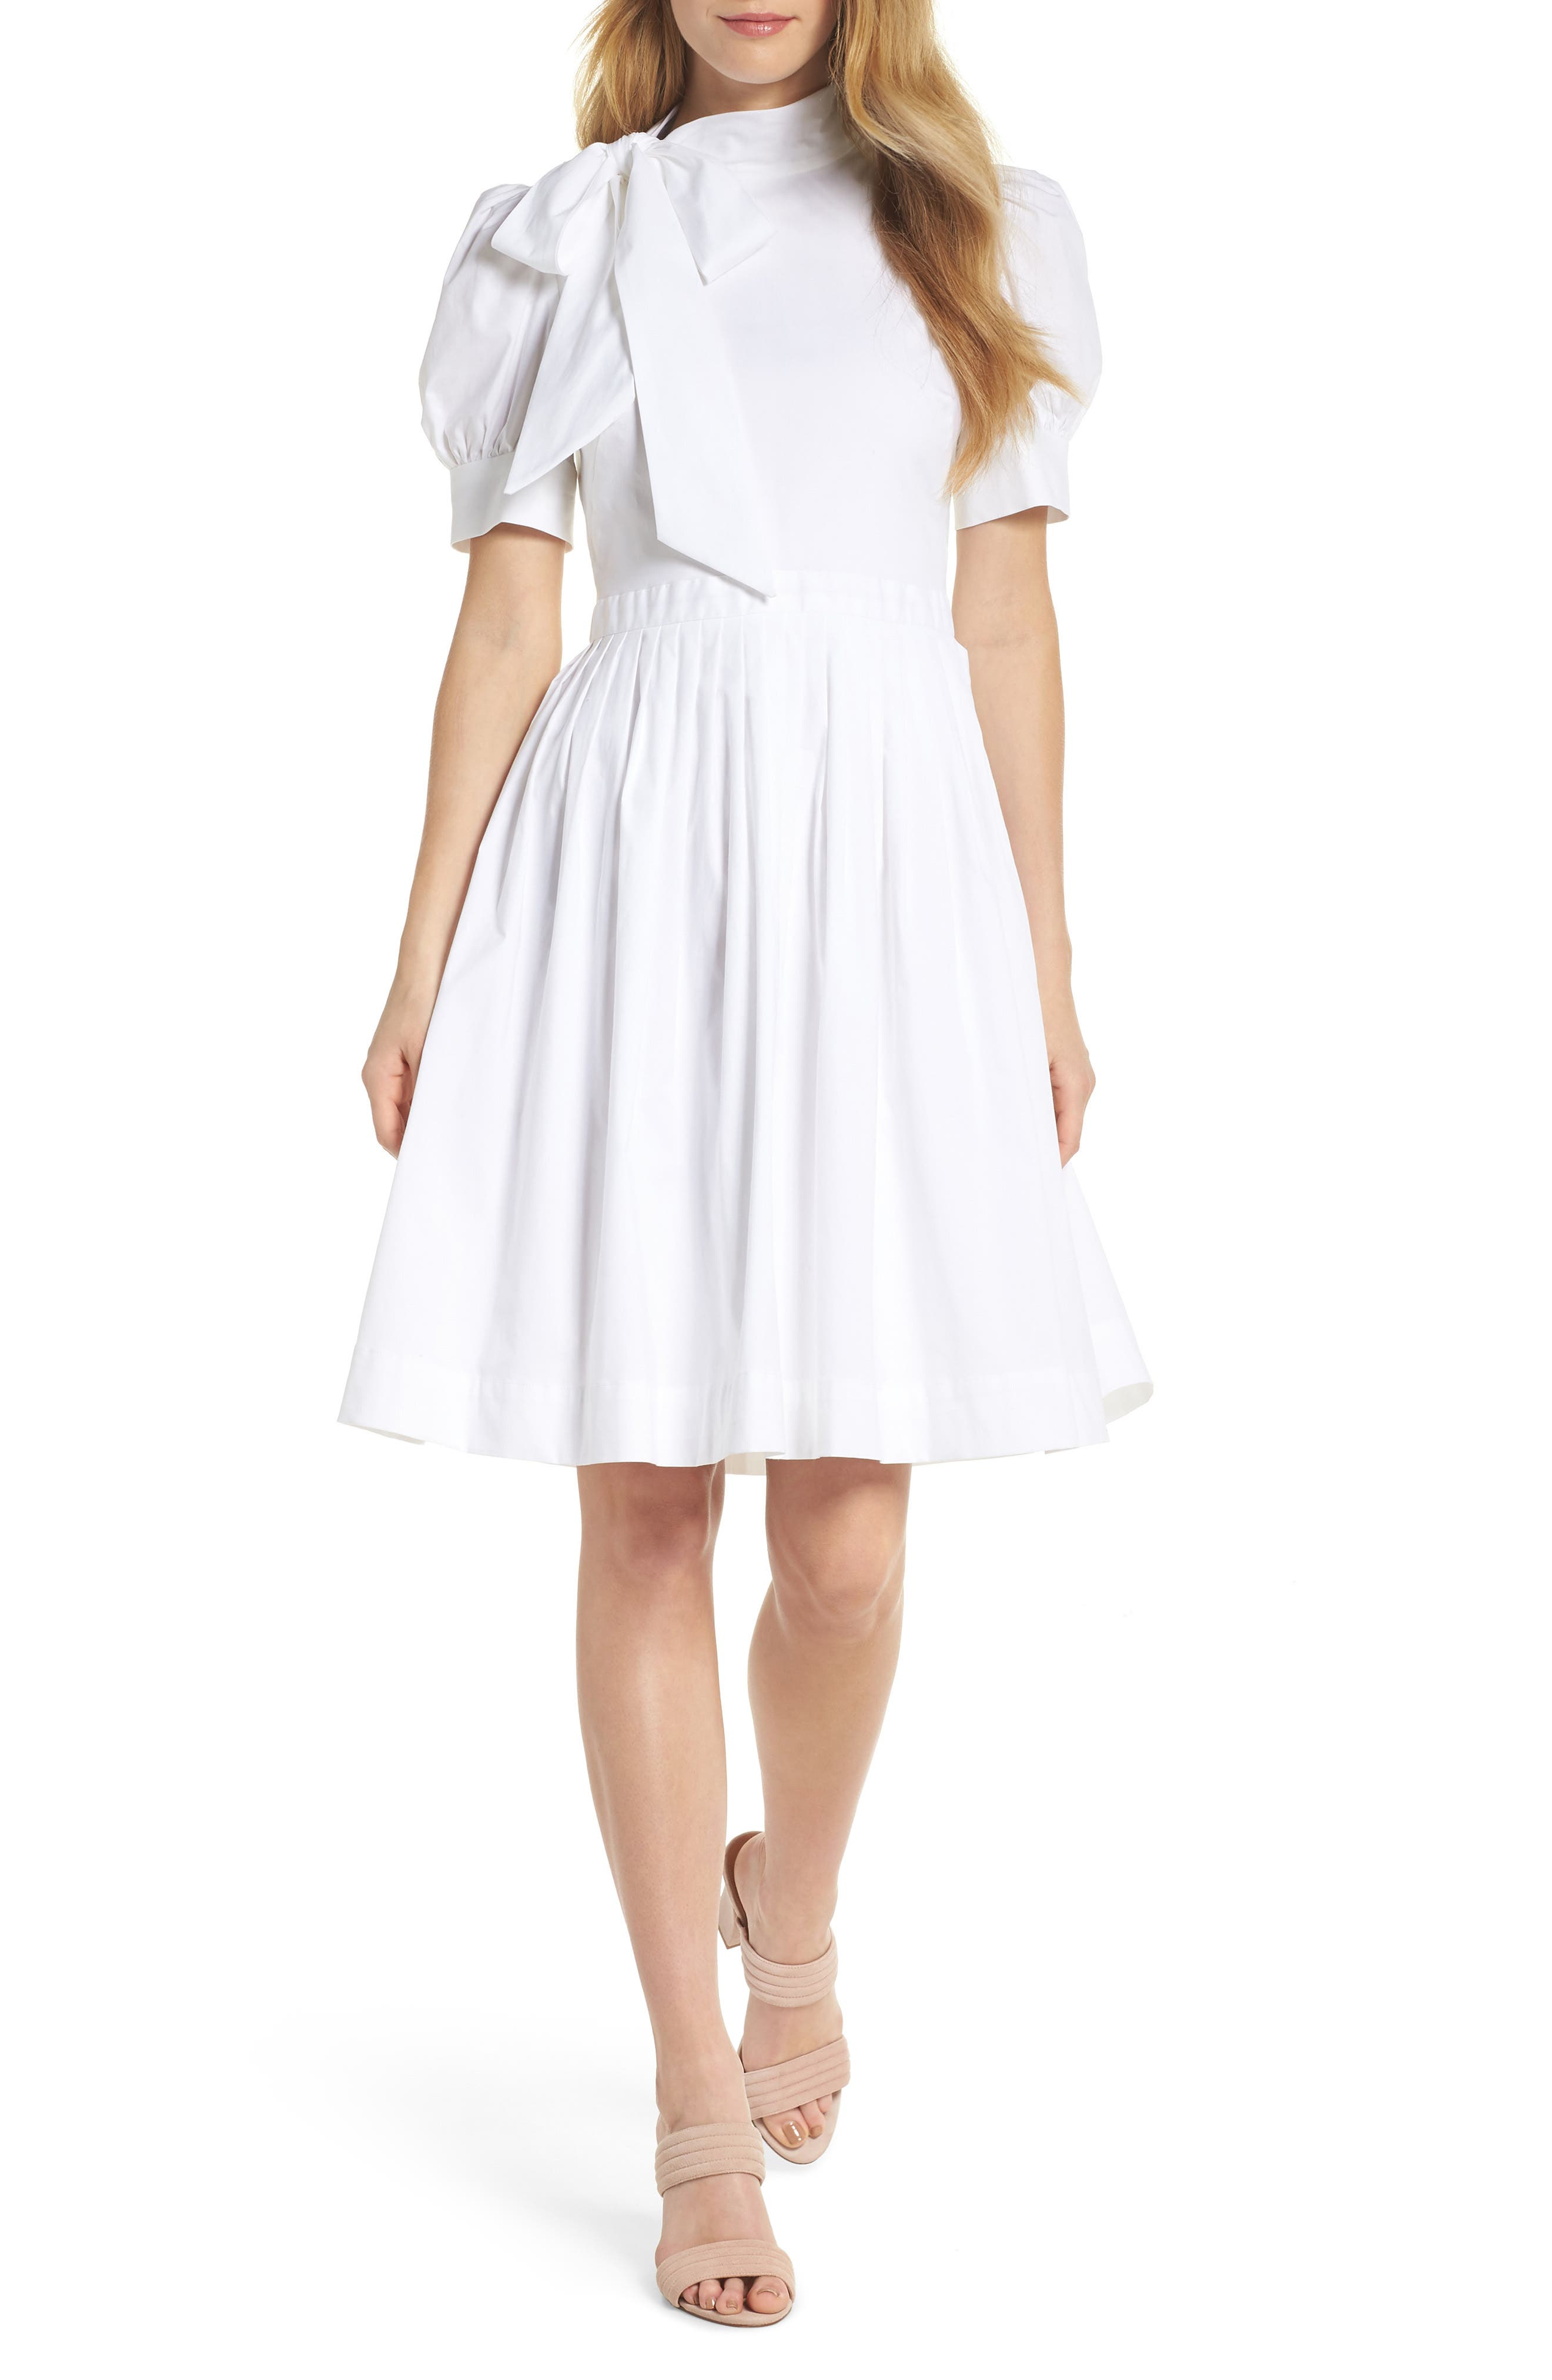 Hanna Puff Sleeve Cotton Poplin Dress,                             Main thumbnail 1, color,                             White